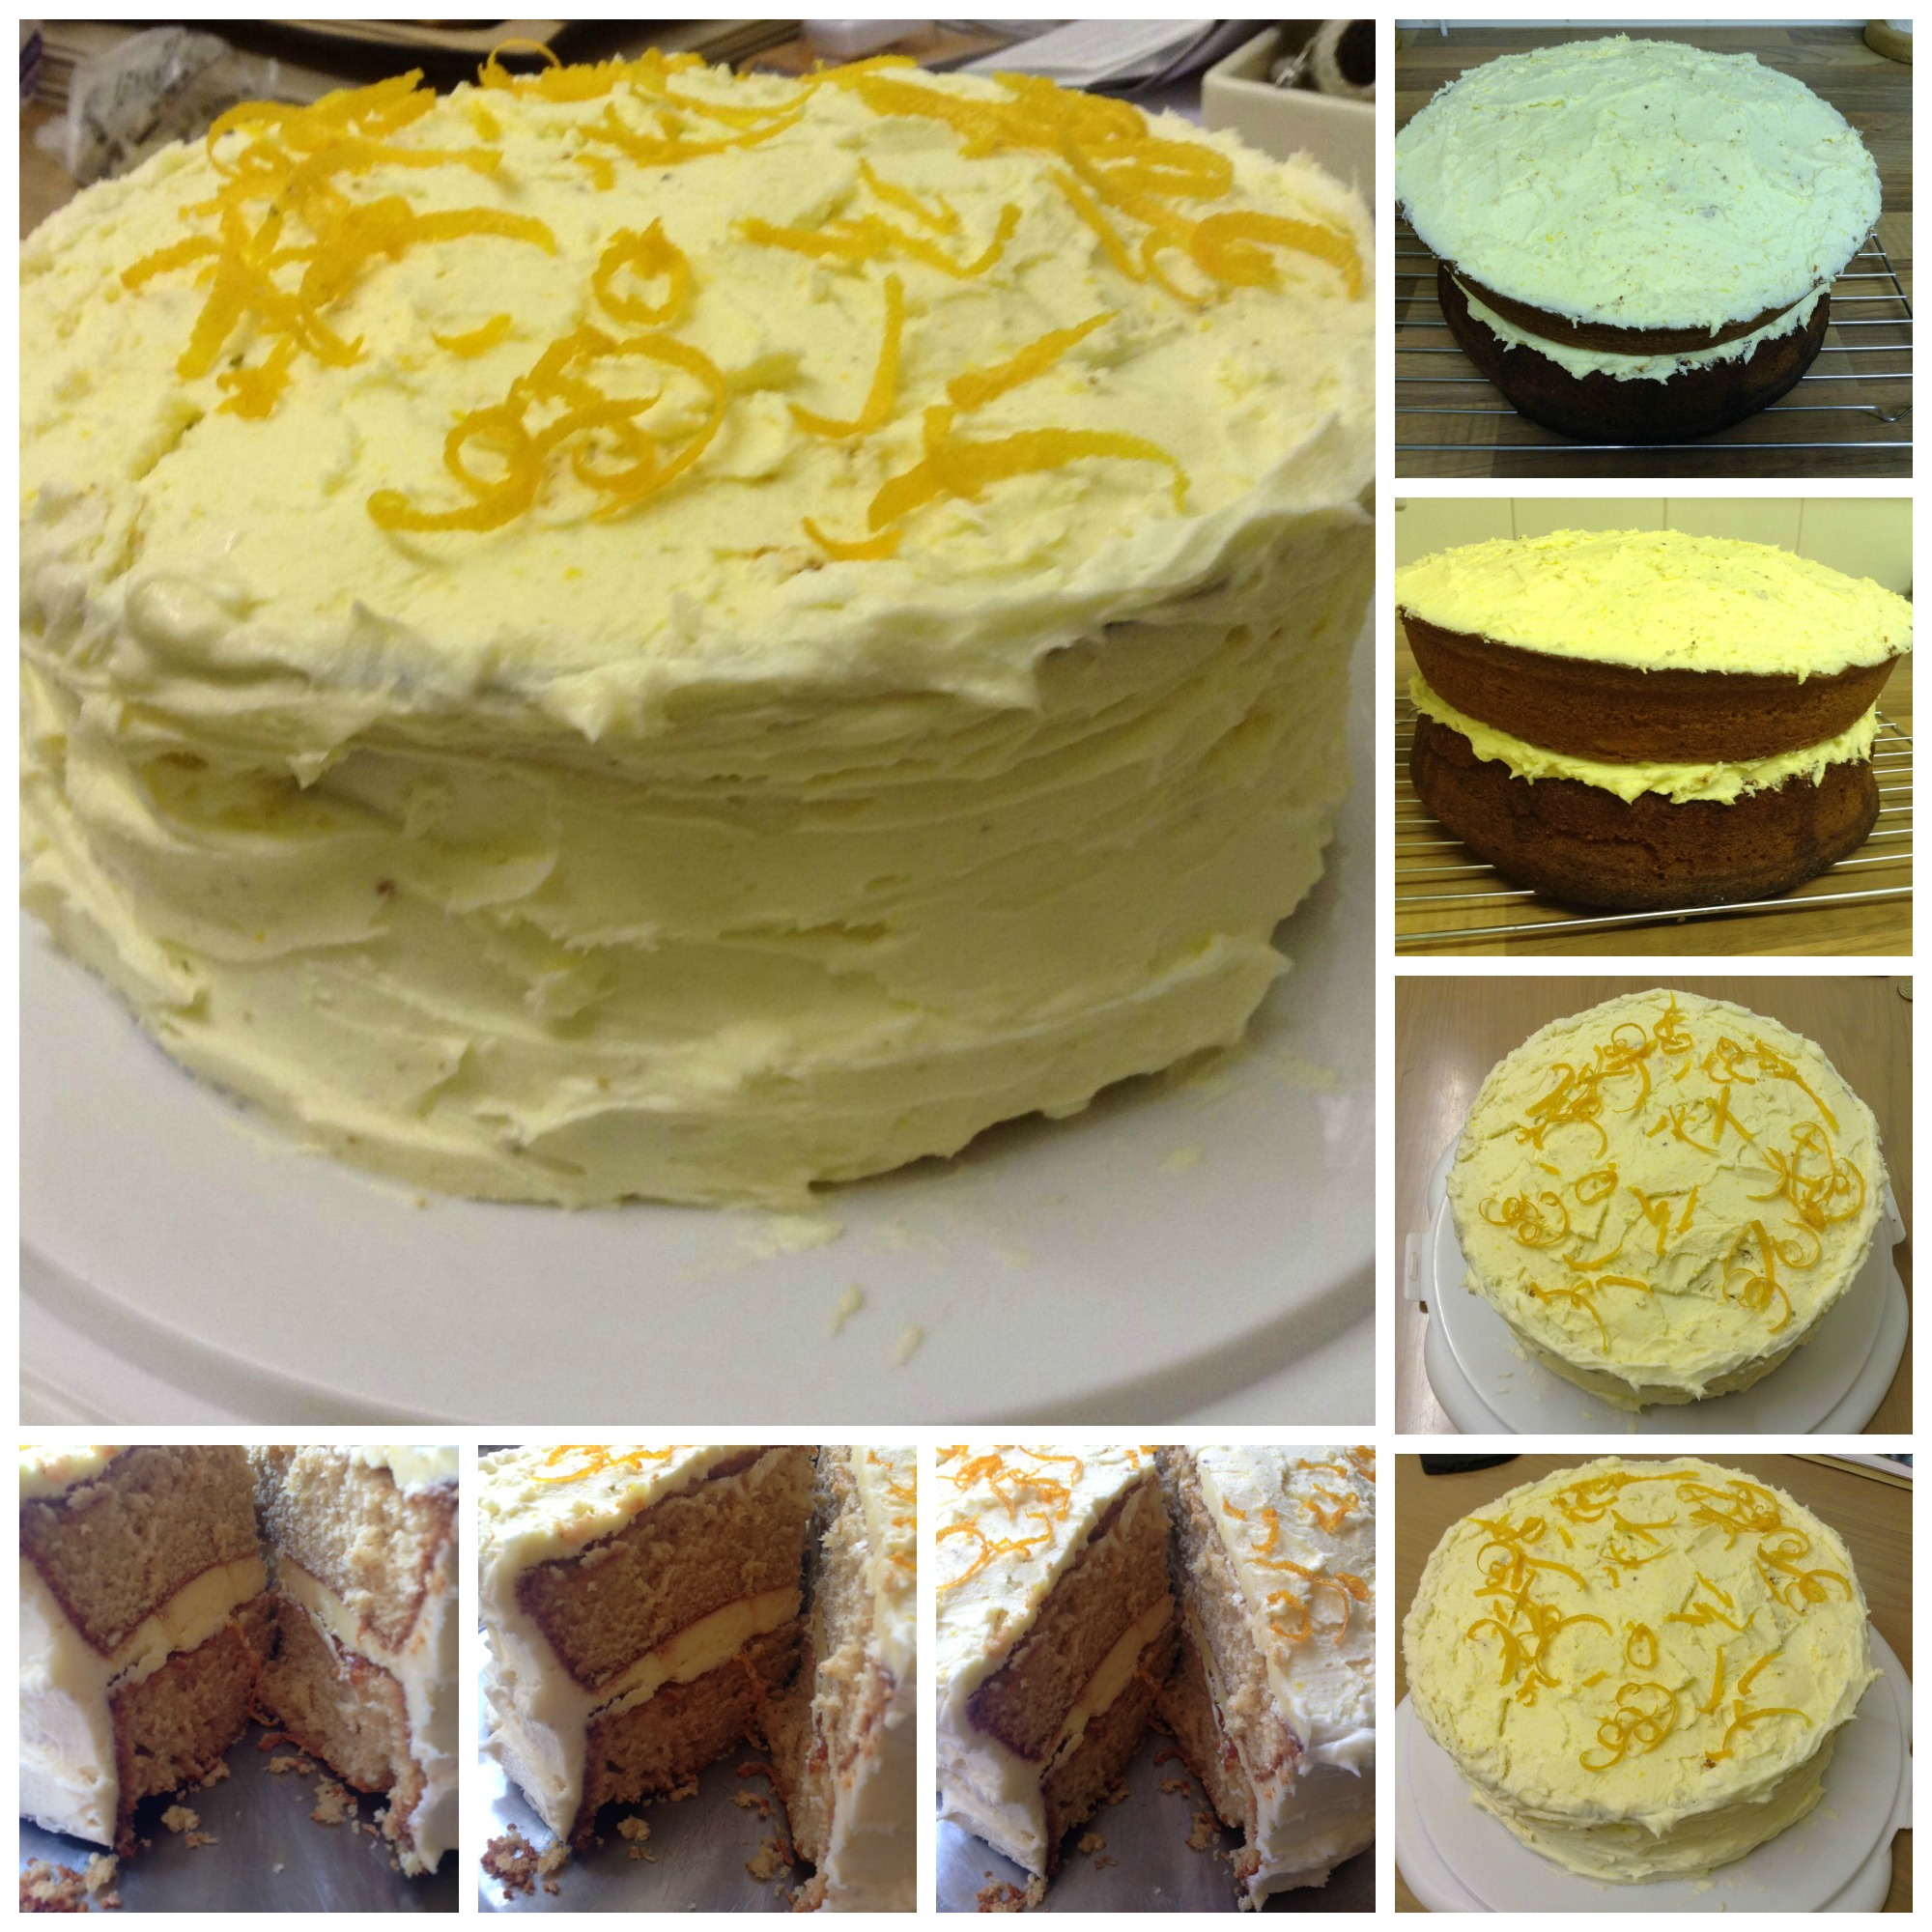 ... layer ice cream cake lemon layer cake orange layer cake recipe key